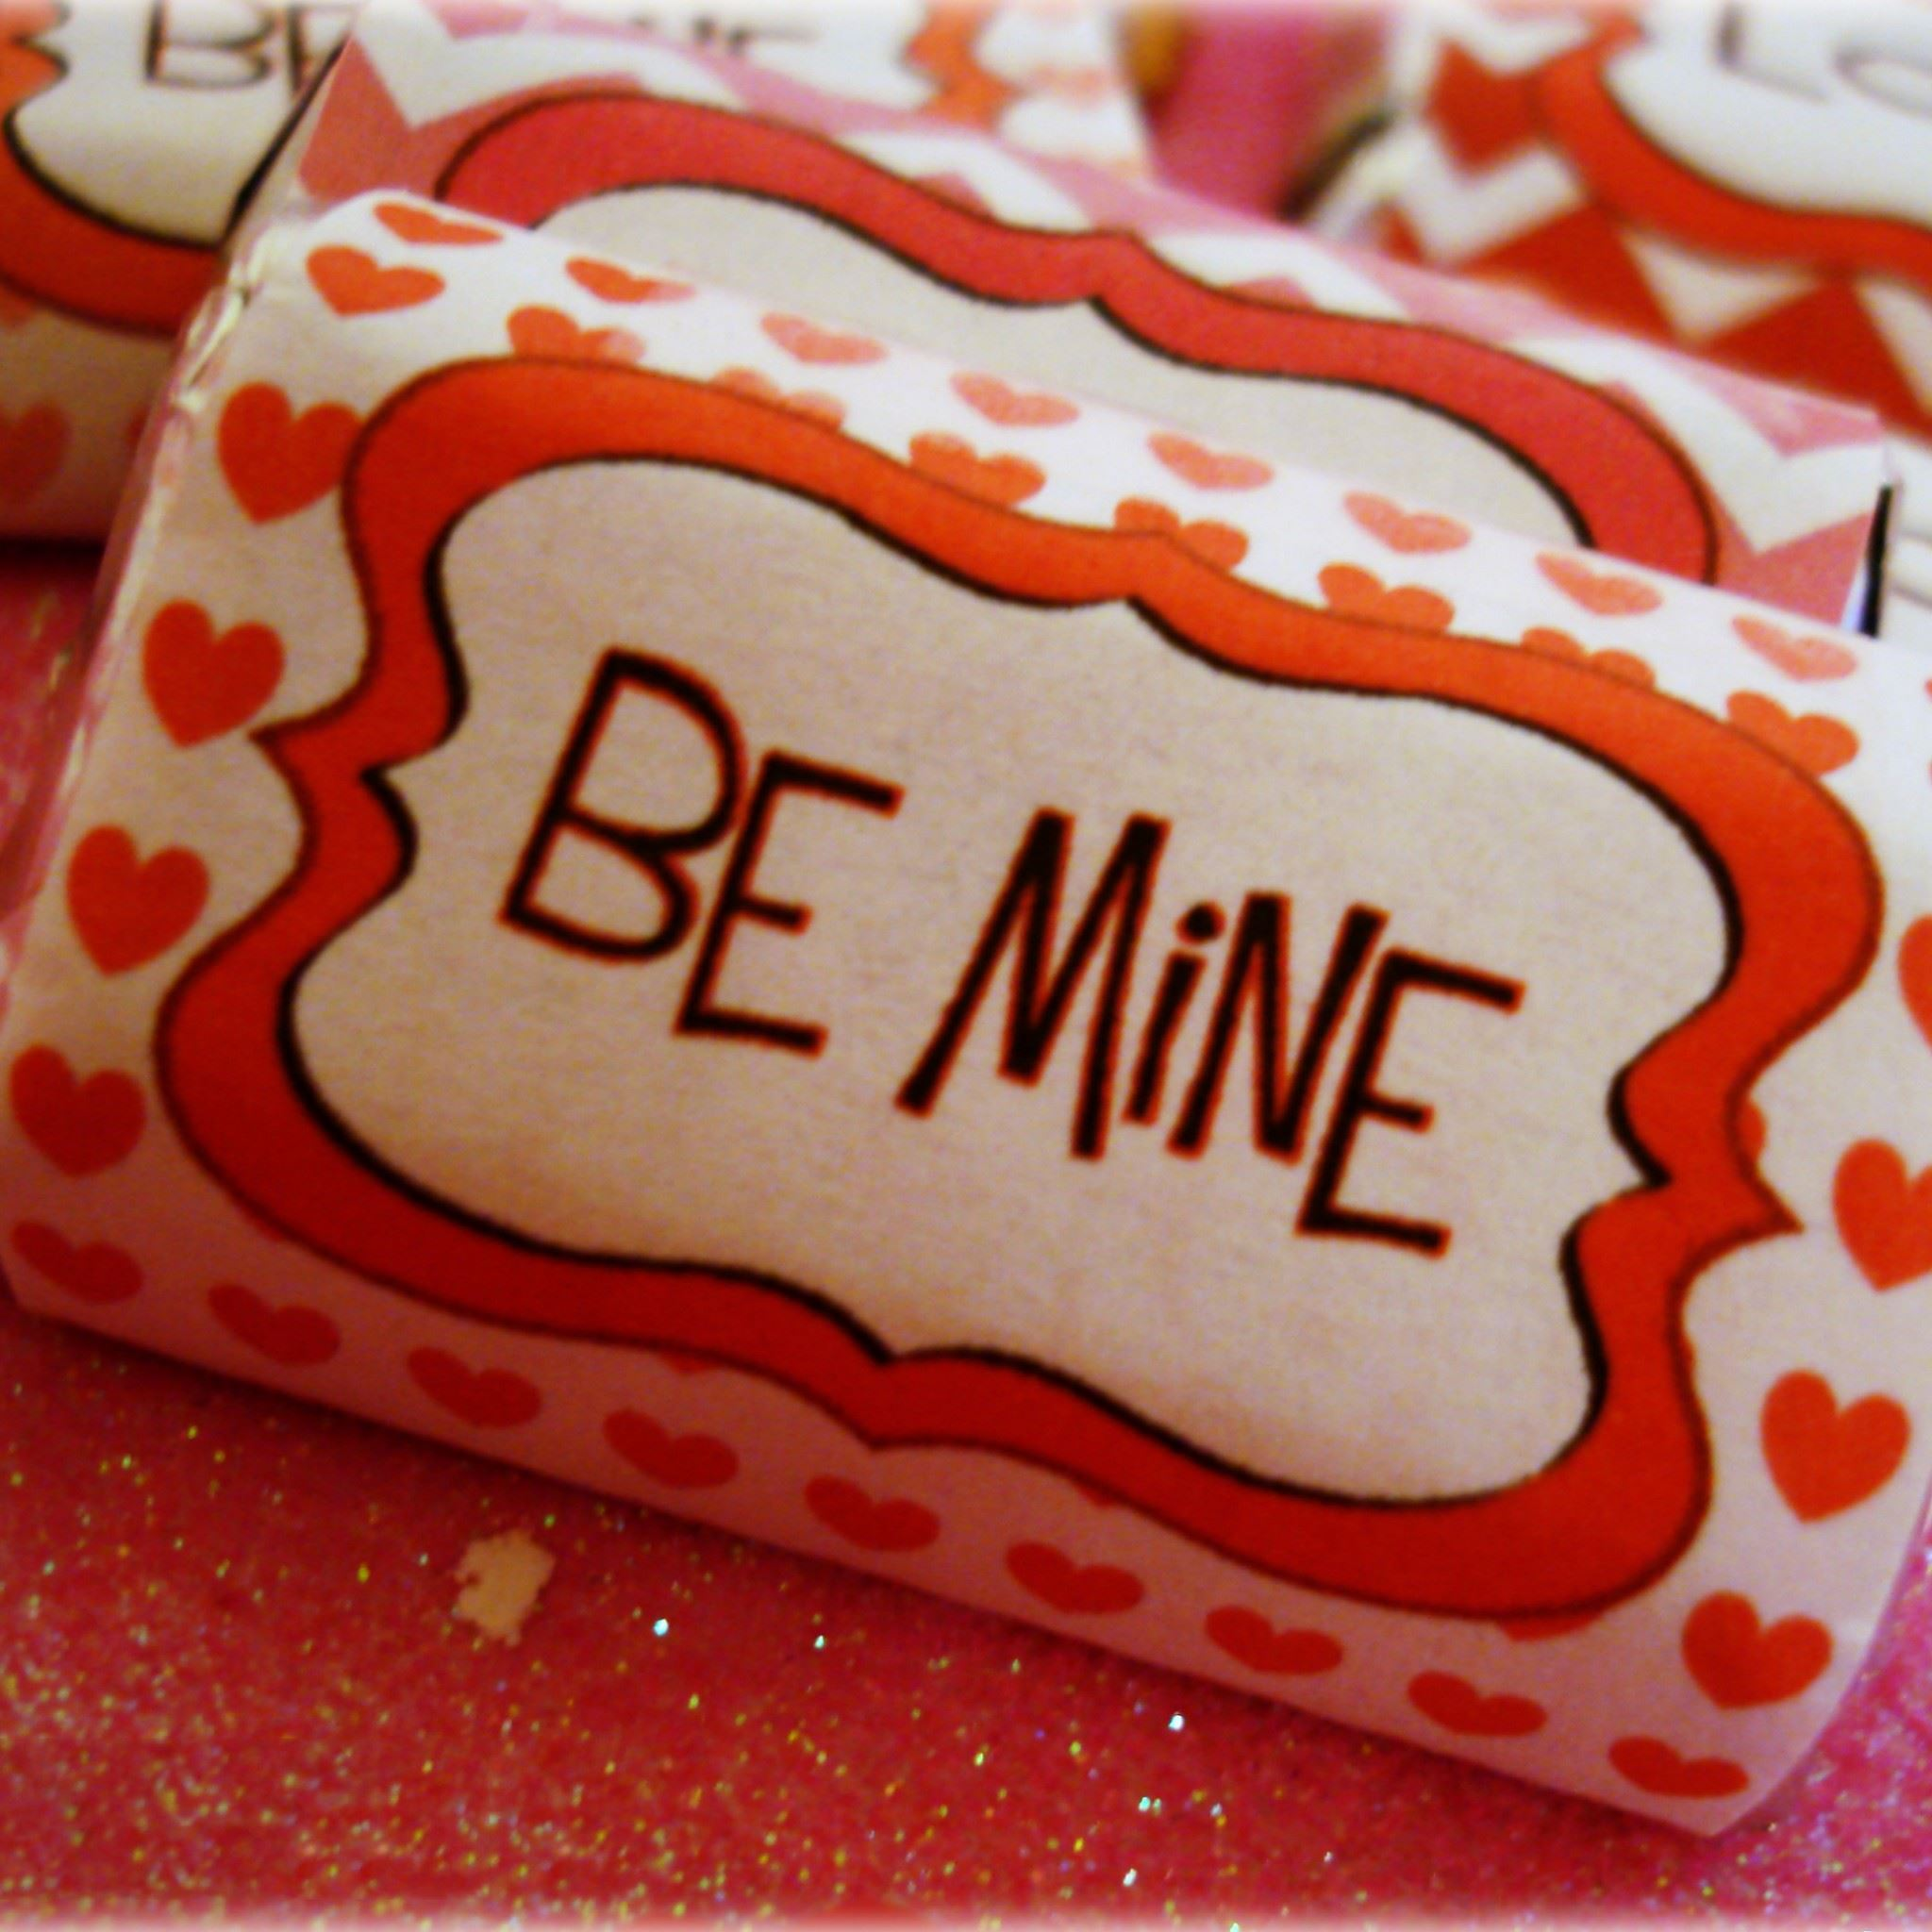 Valentines Day Candy Be Mine iPad Air wallpaper